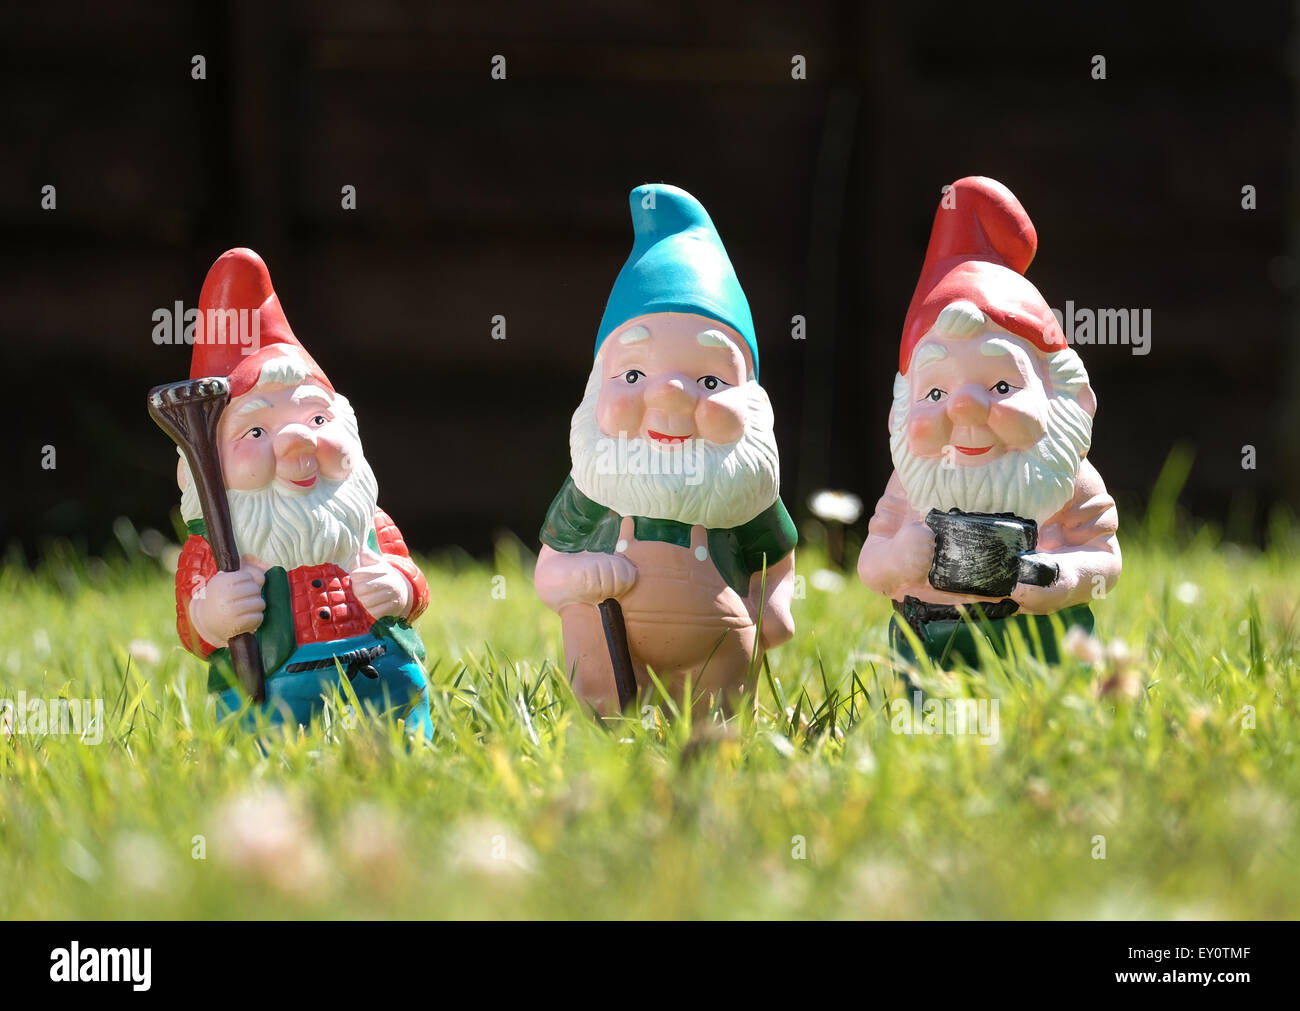 Garden gnomes pictured on the lawn of a sunny garden Stock Photo